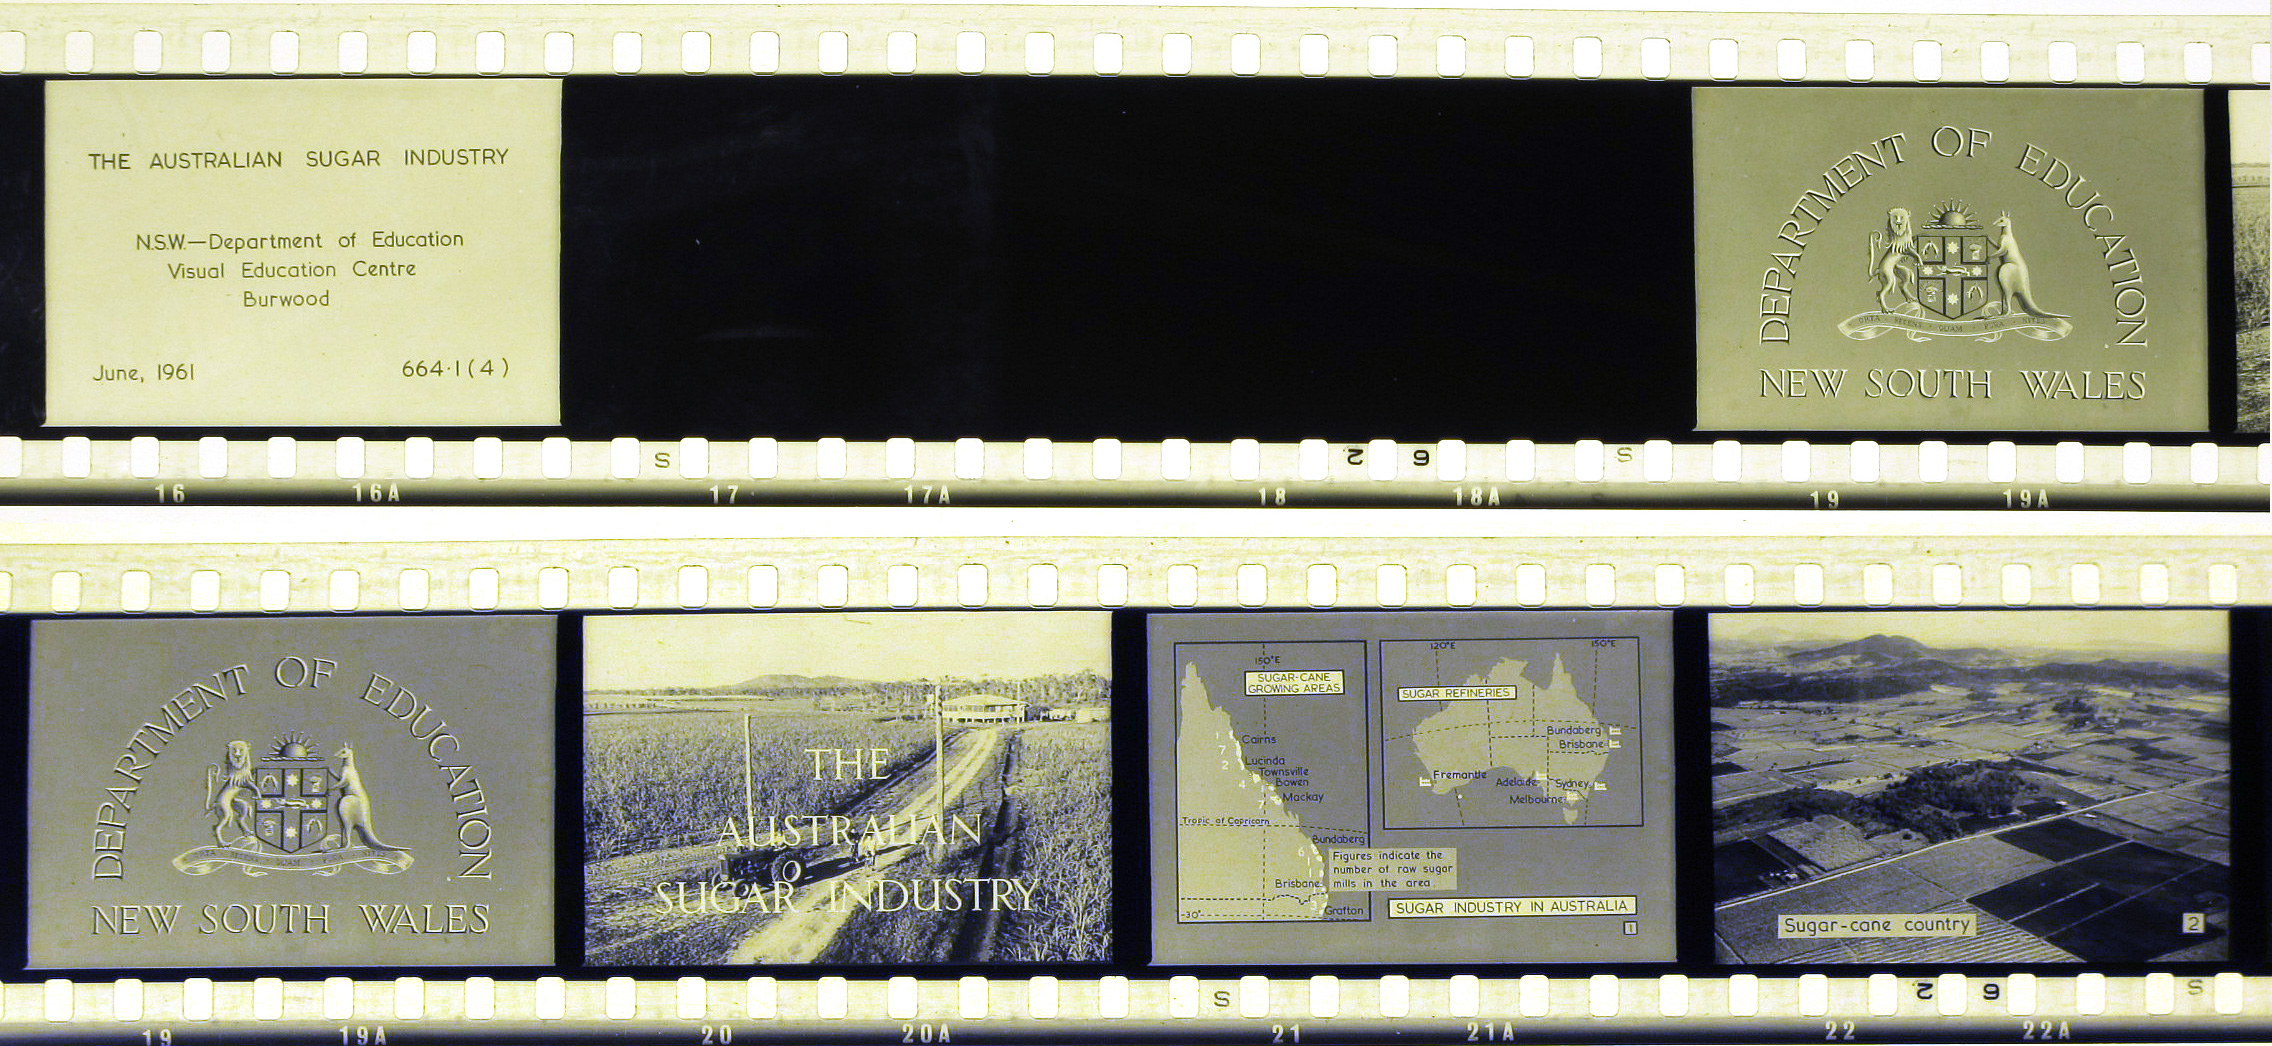 Six frames from a celluloid film strip featuring introductory pages, maps and photographs of sugar-cane growing in New South Wales.